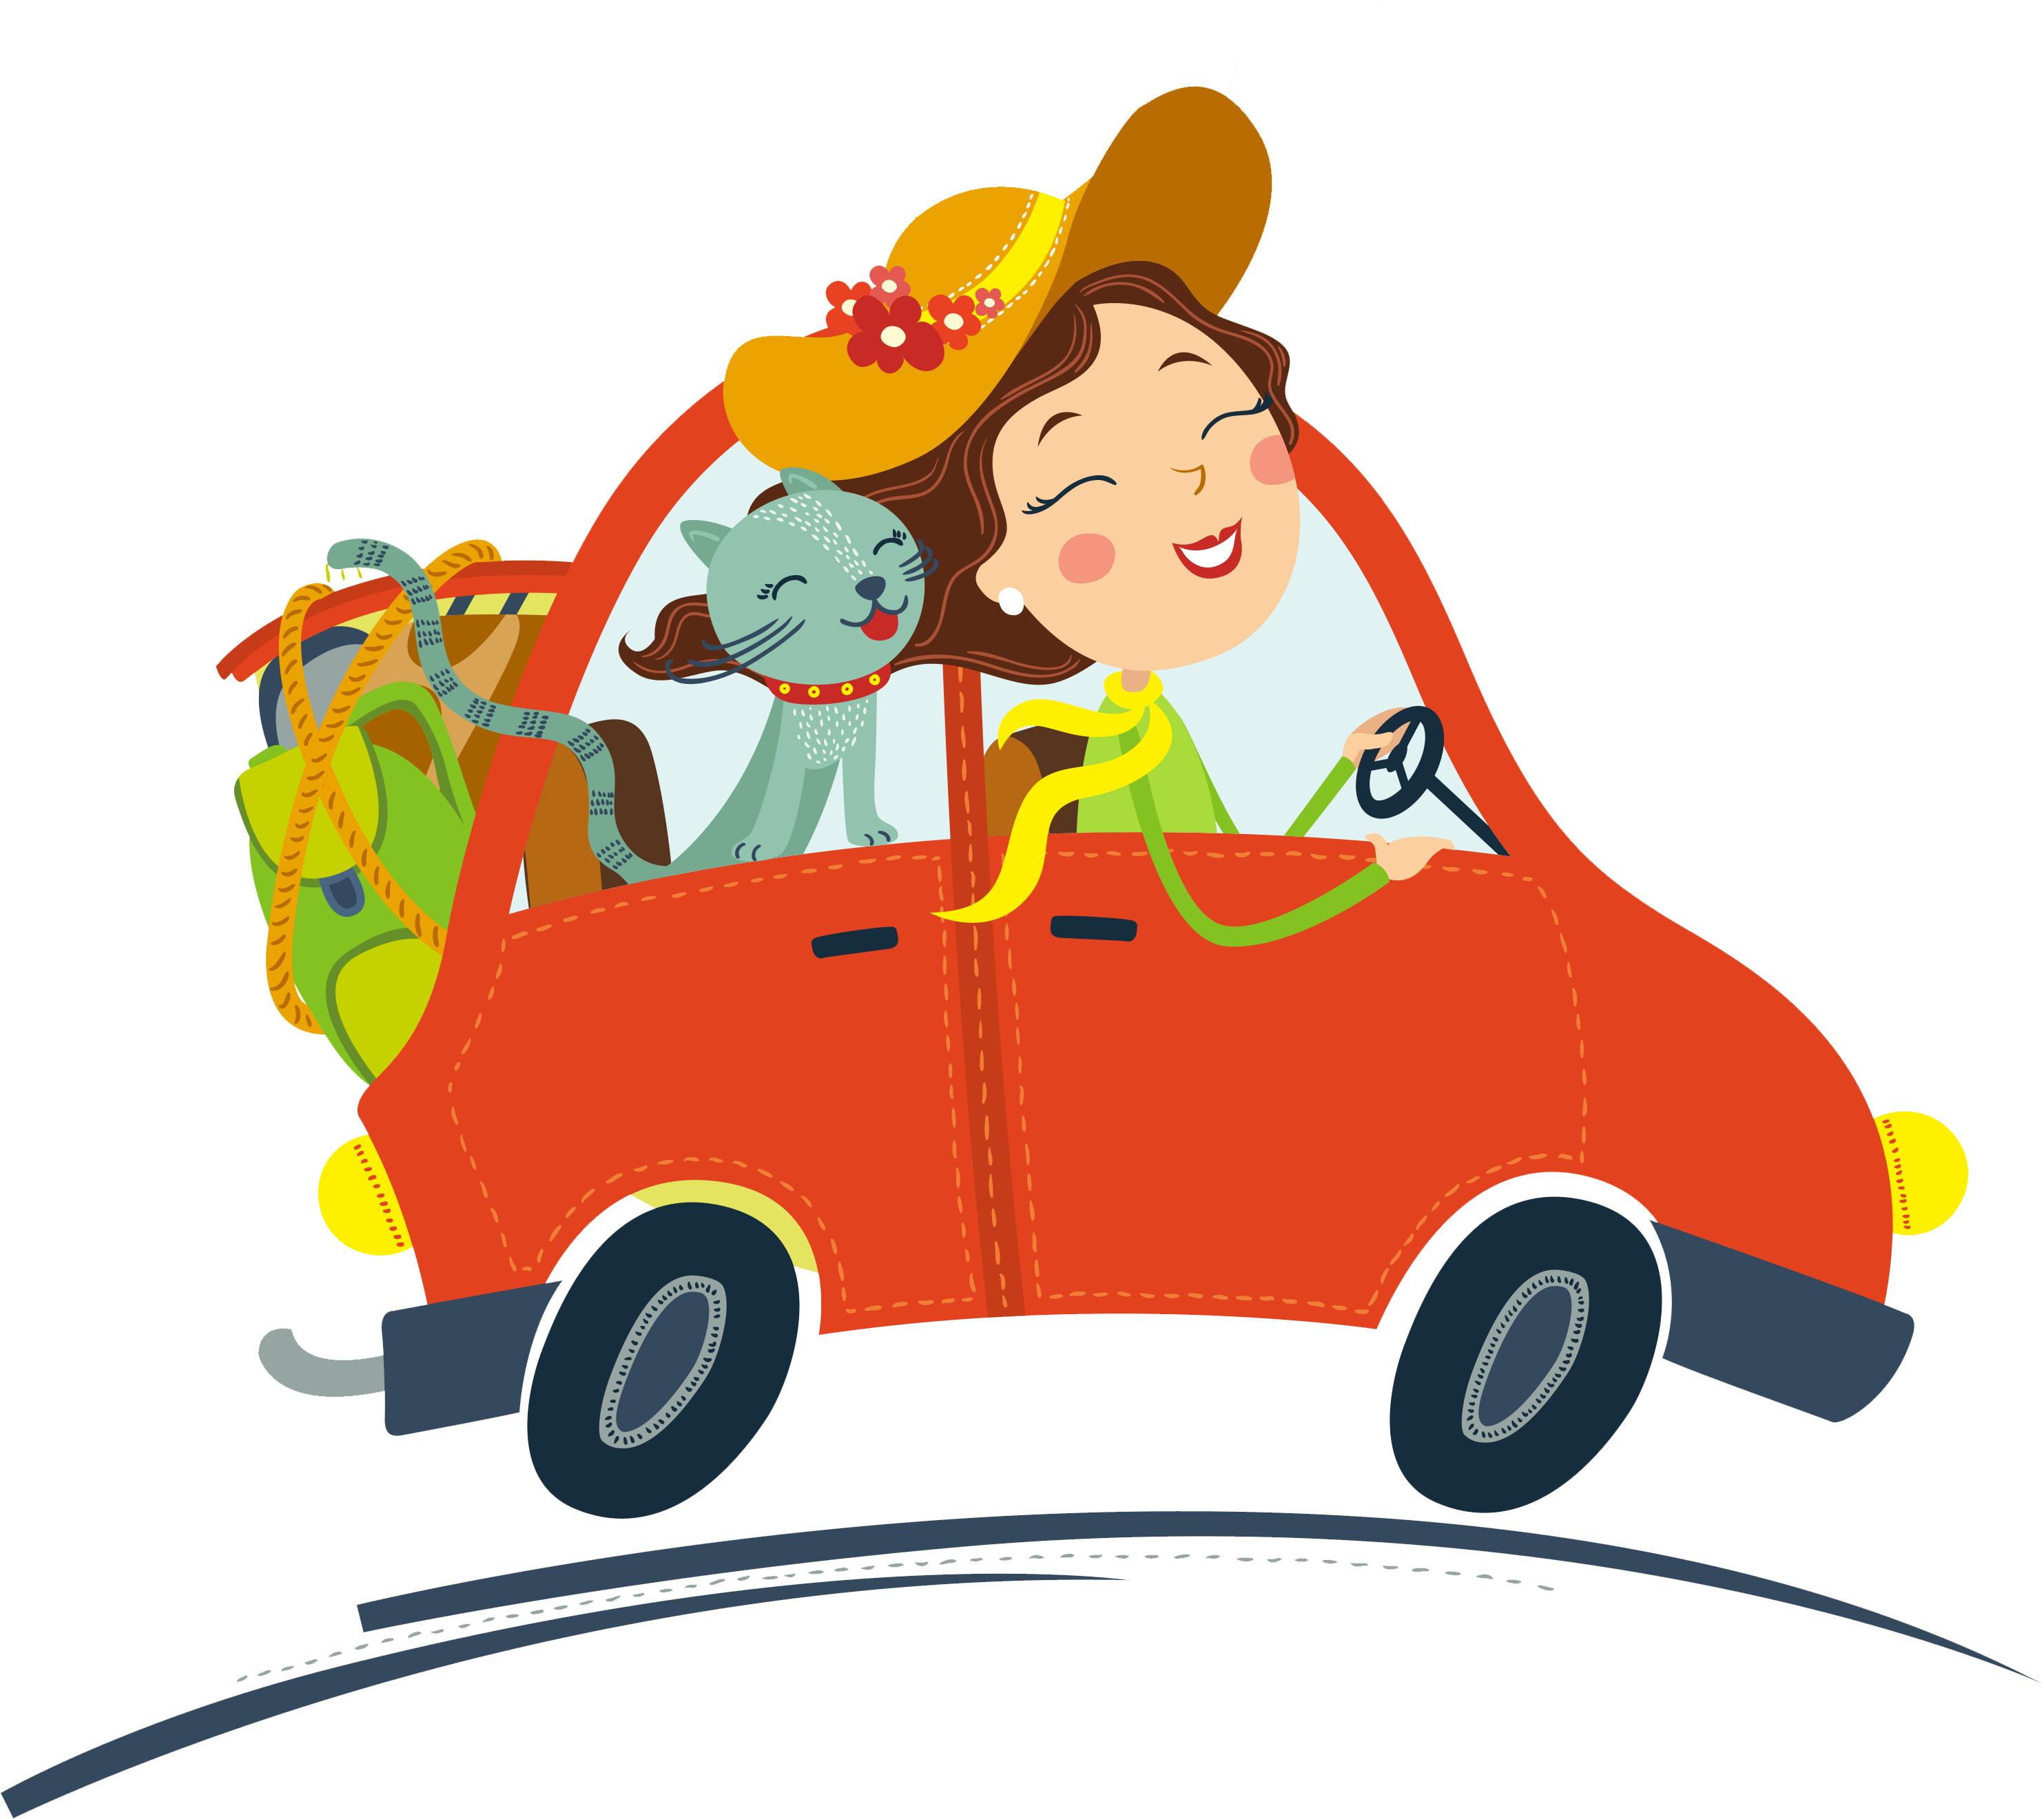 Cat driving car clipart svg library stock Cat Car Female - Cartoon red car driving cartoon creative 2967*2641 ... svg library stock